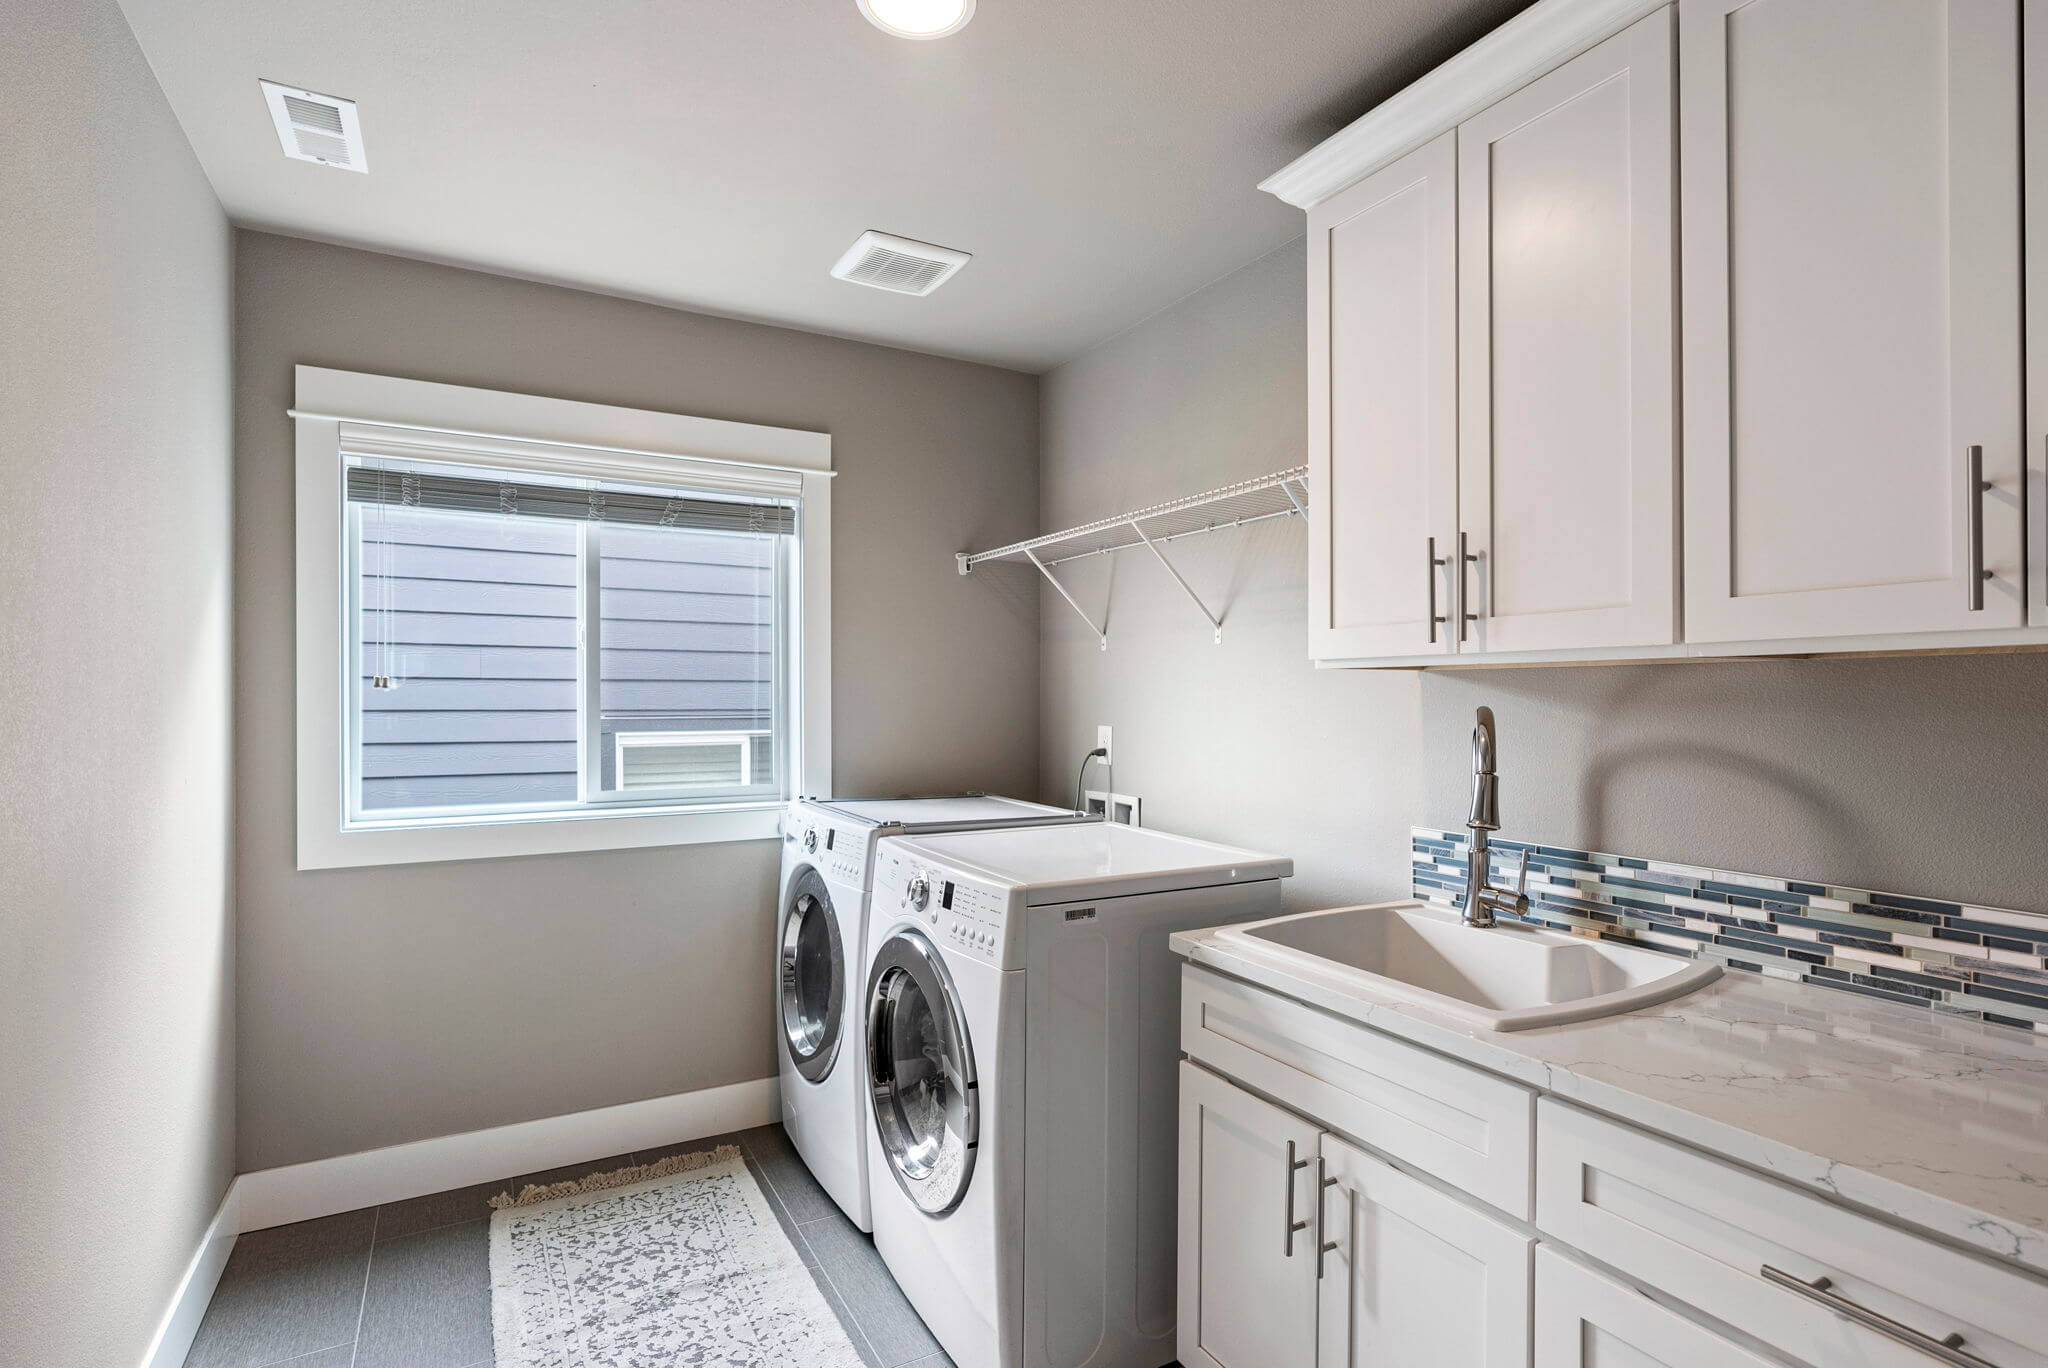 Upstairs laundry room with utility sink and quartz counter